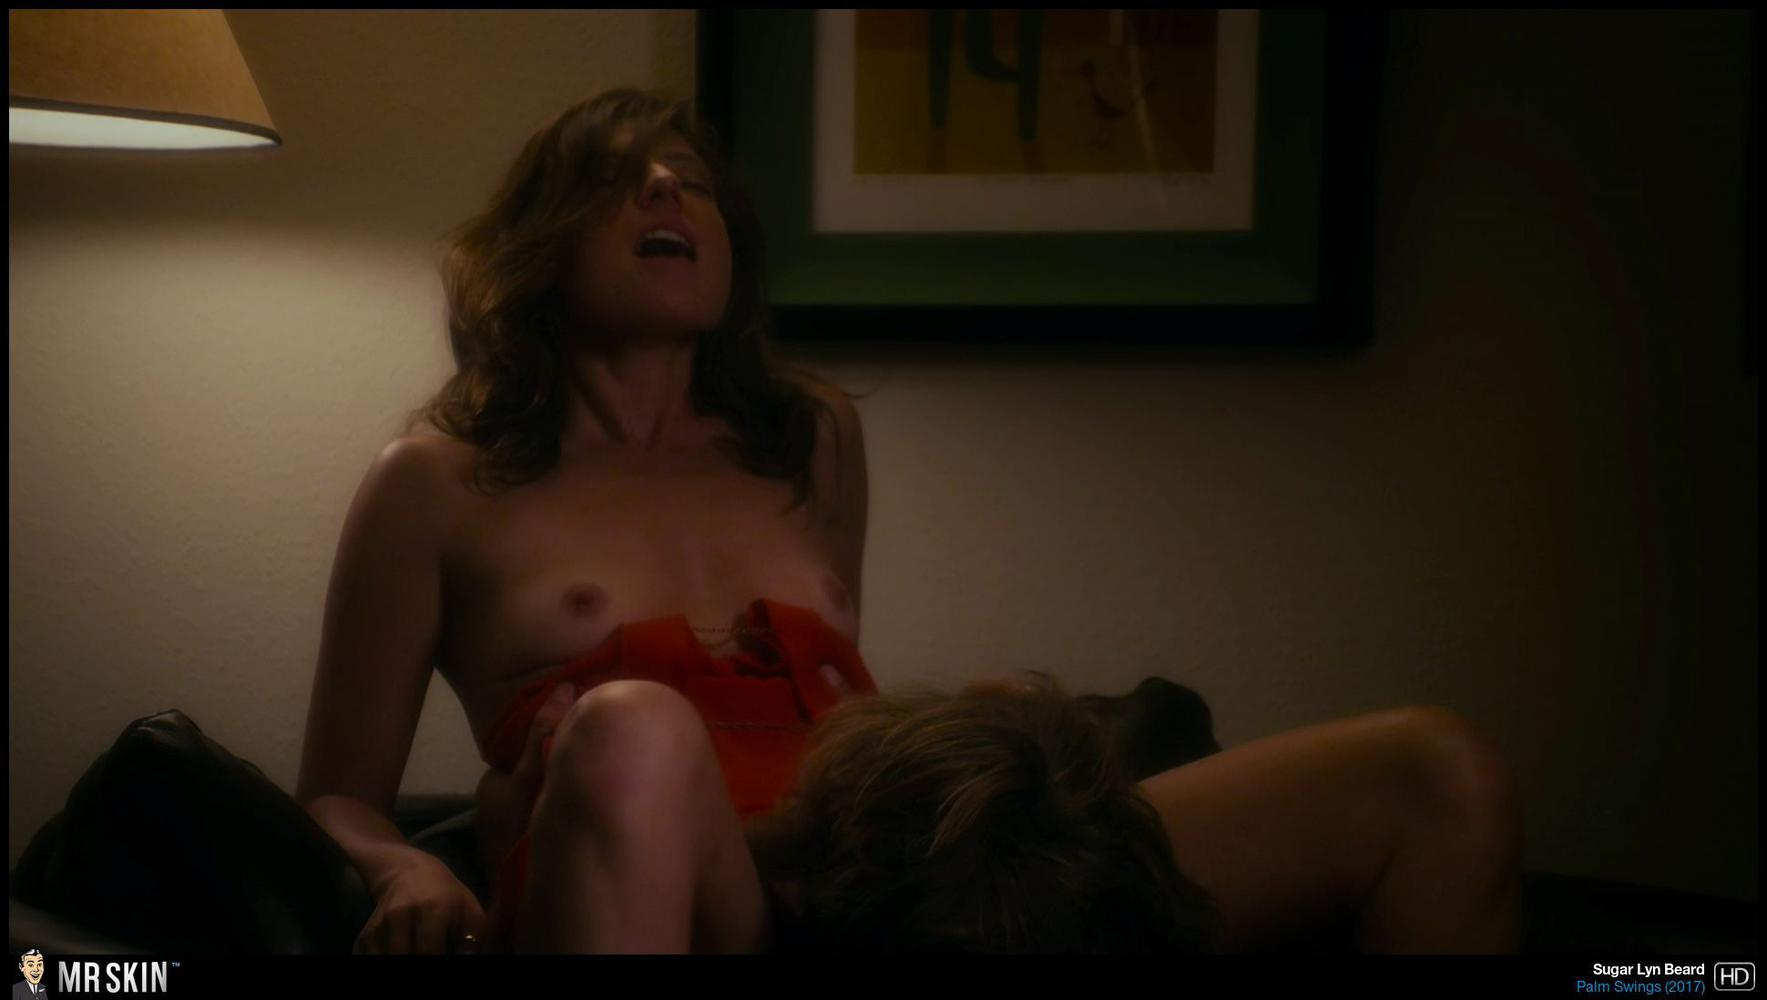 Mr skin diane farr nude are certainly